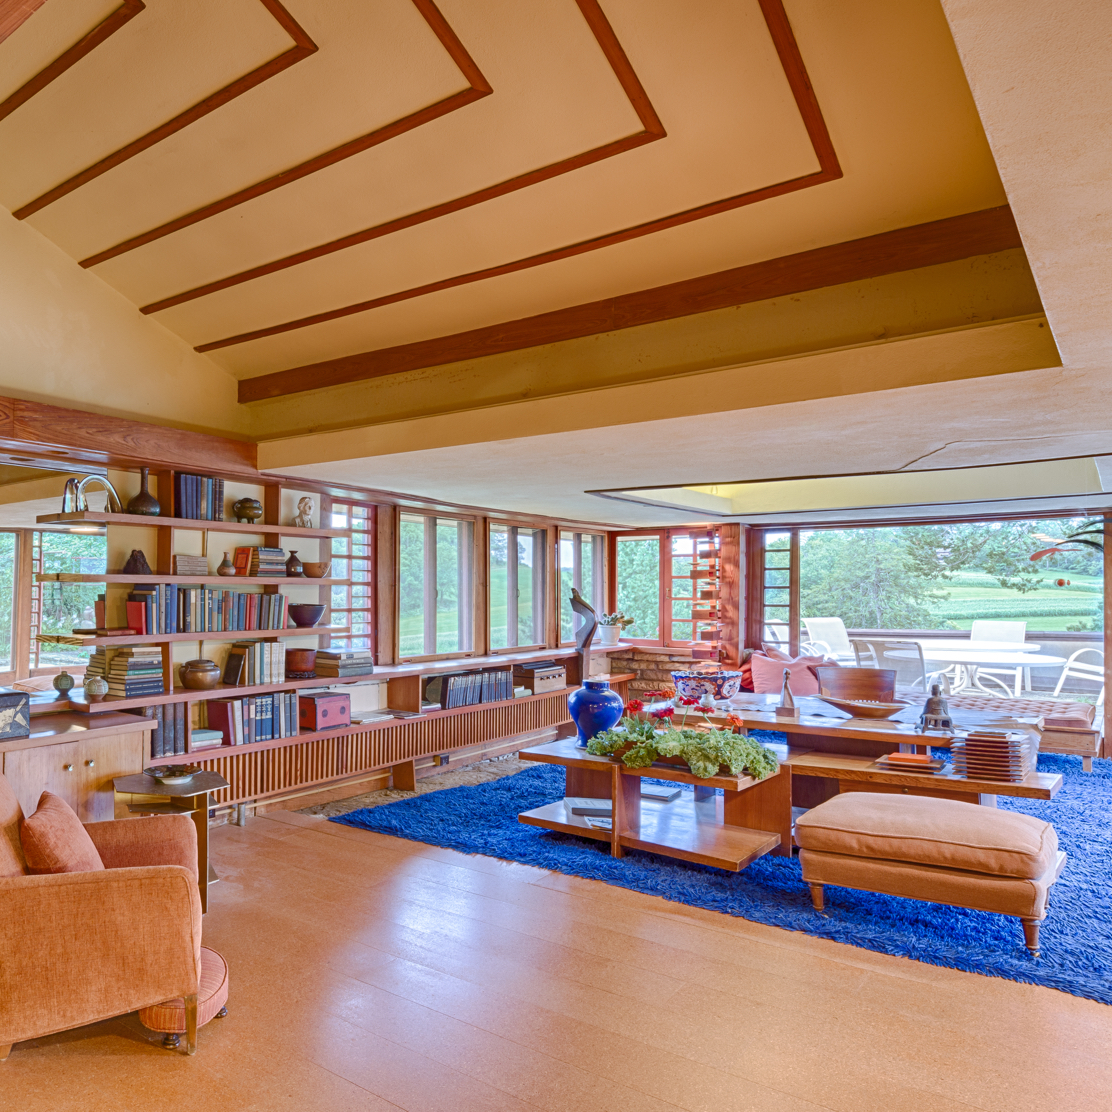 frank lloyd wright home interiors peek inside 7 iconic frank lloyd wright buildings frank 23770